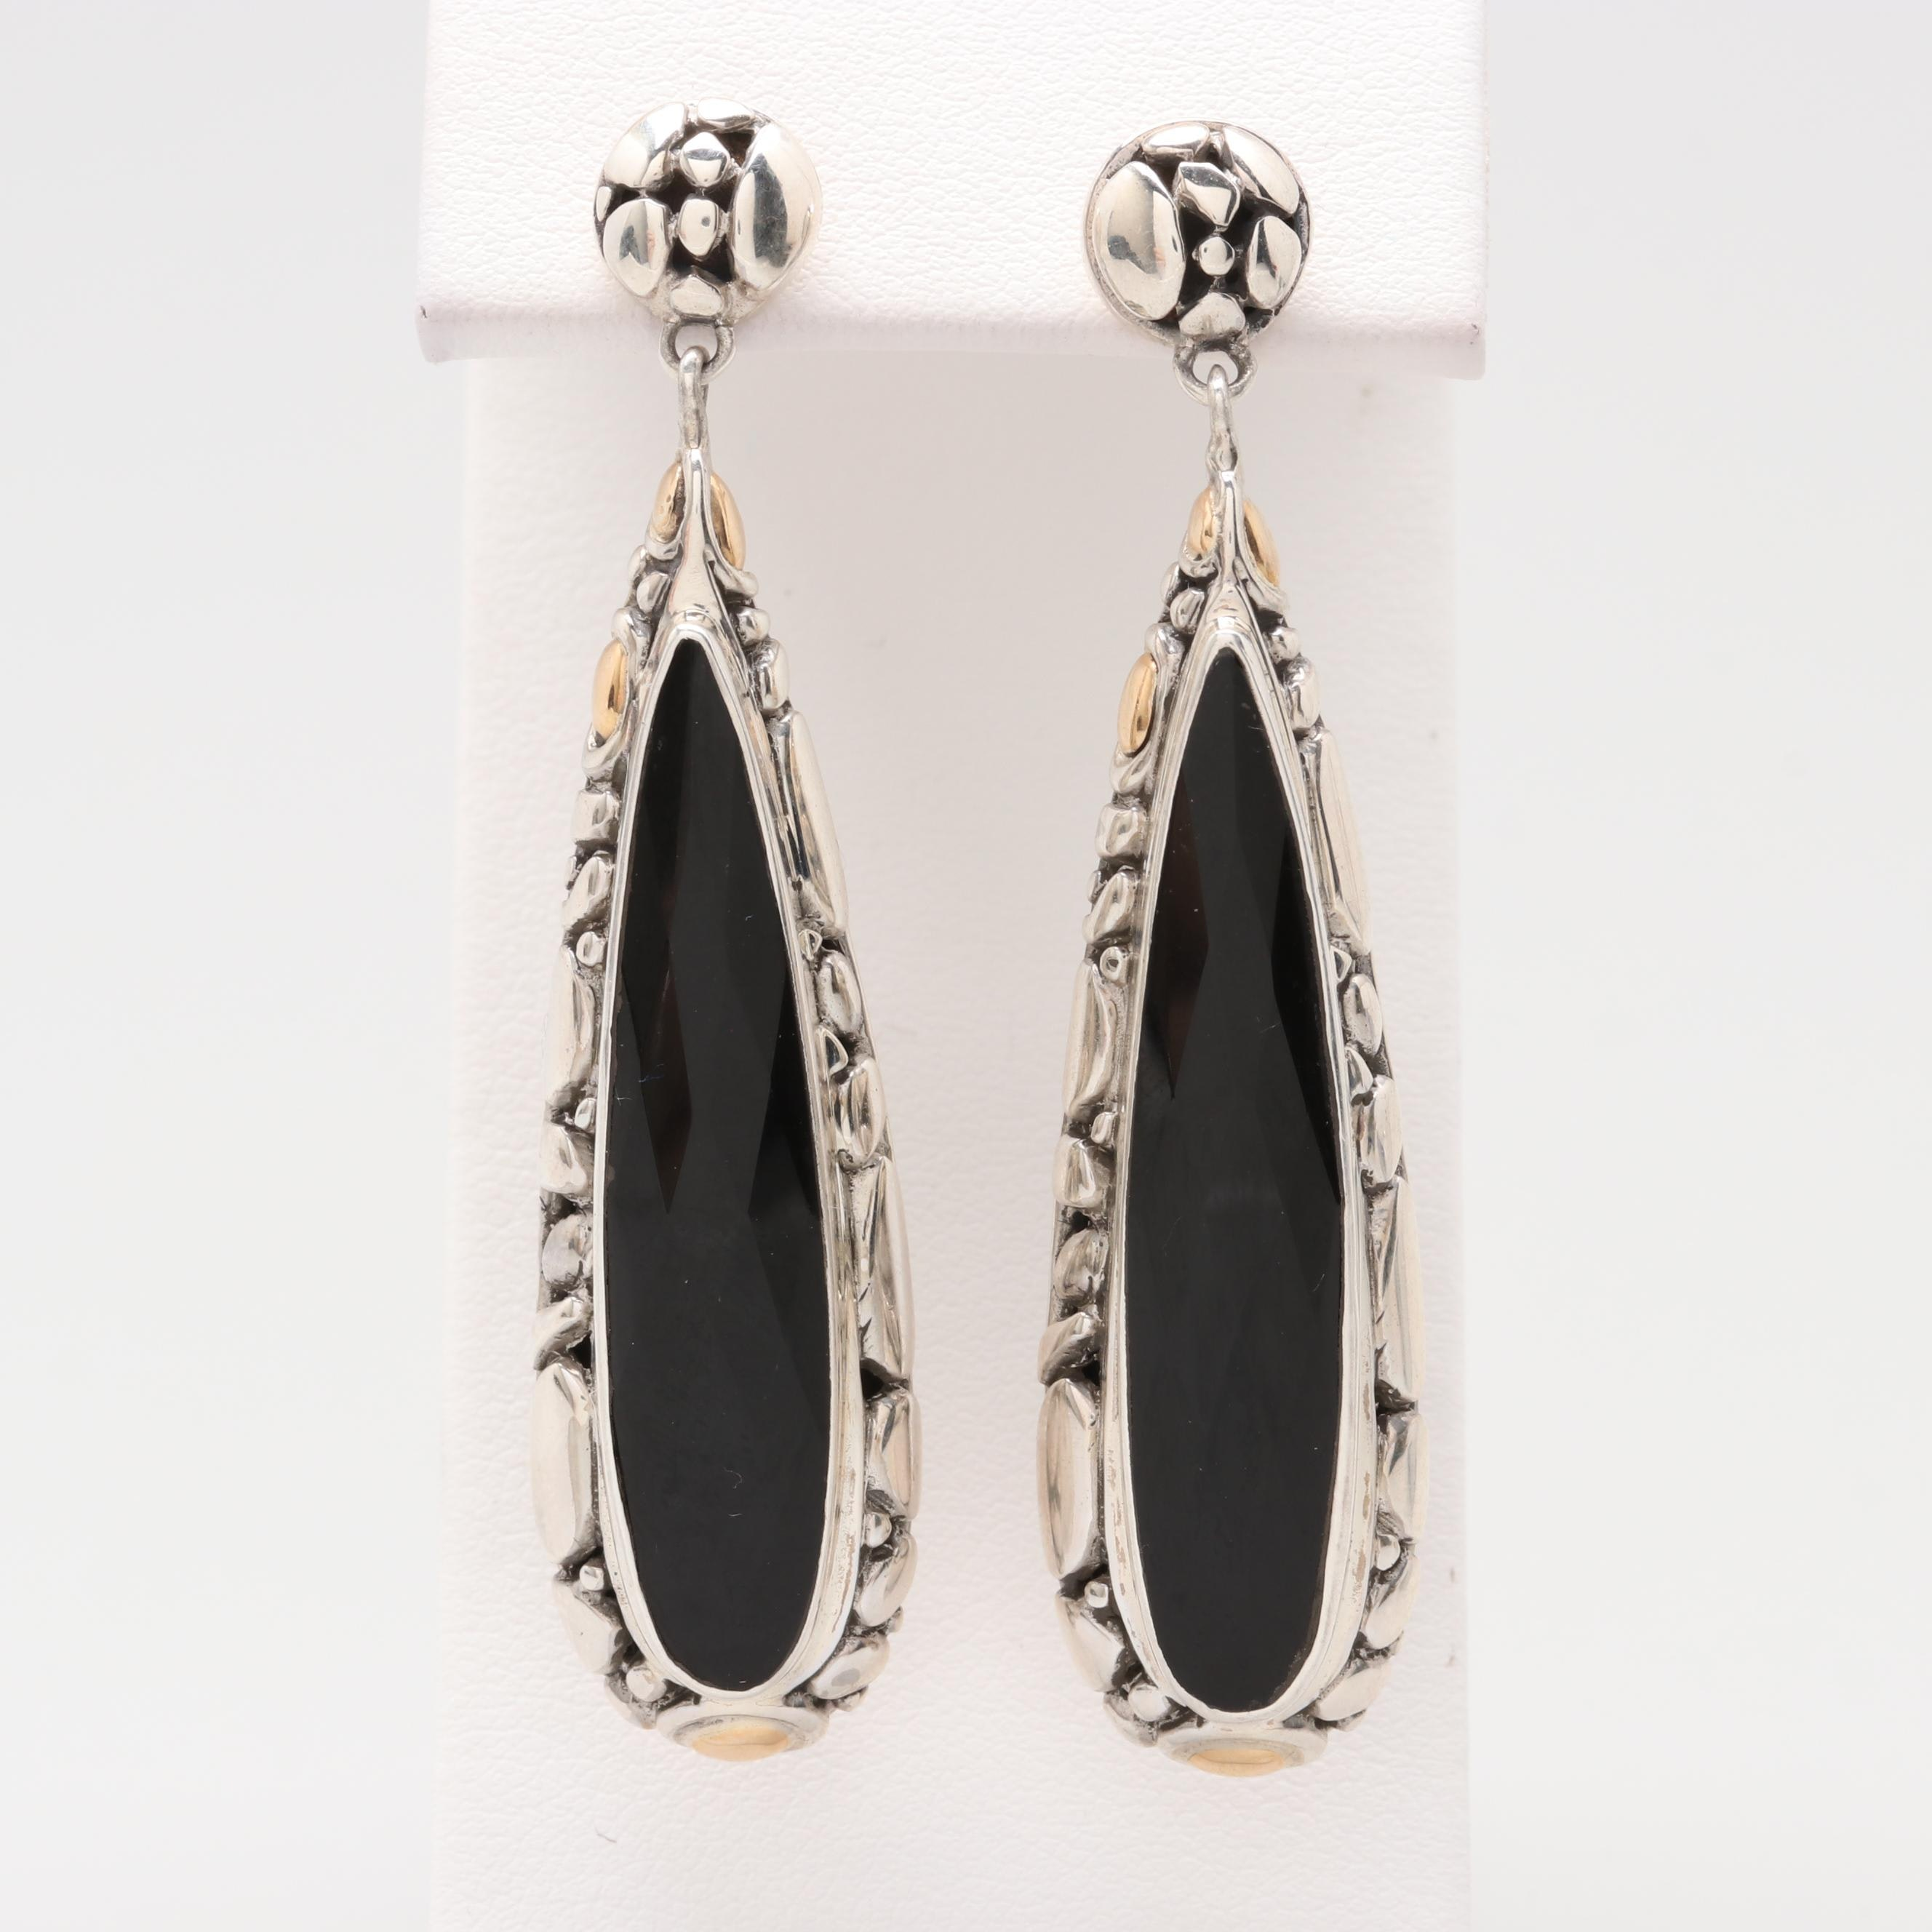 Robert Manse Sterling Silver Black Onyx Earrings with 18K Accents